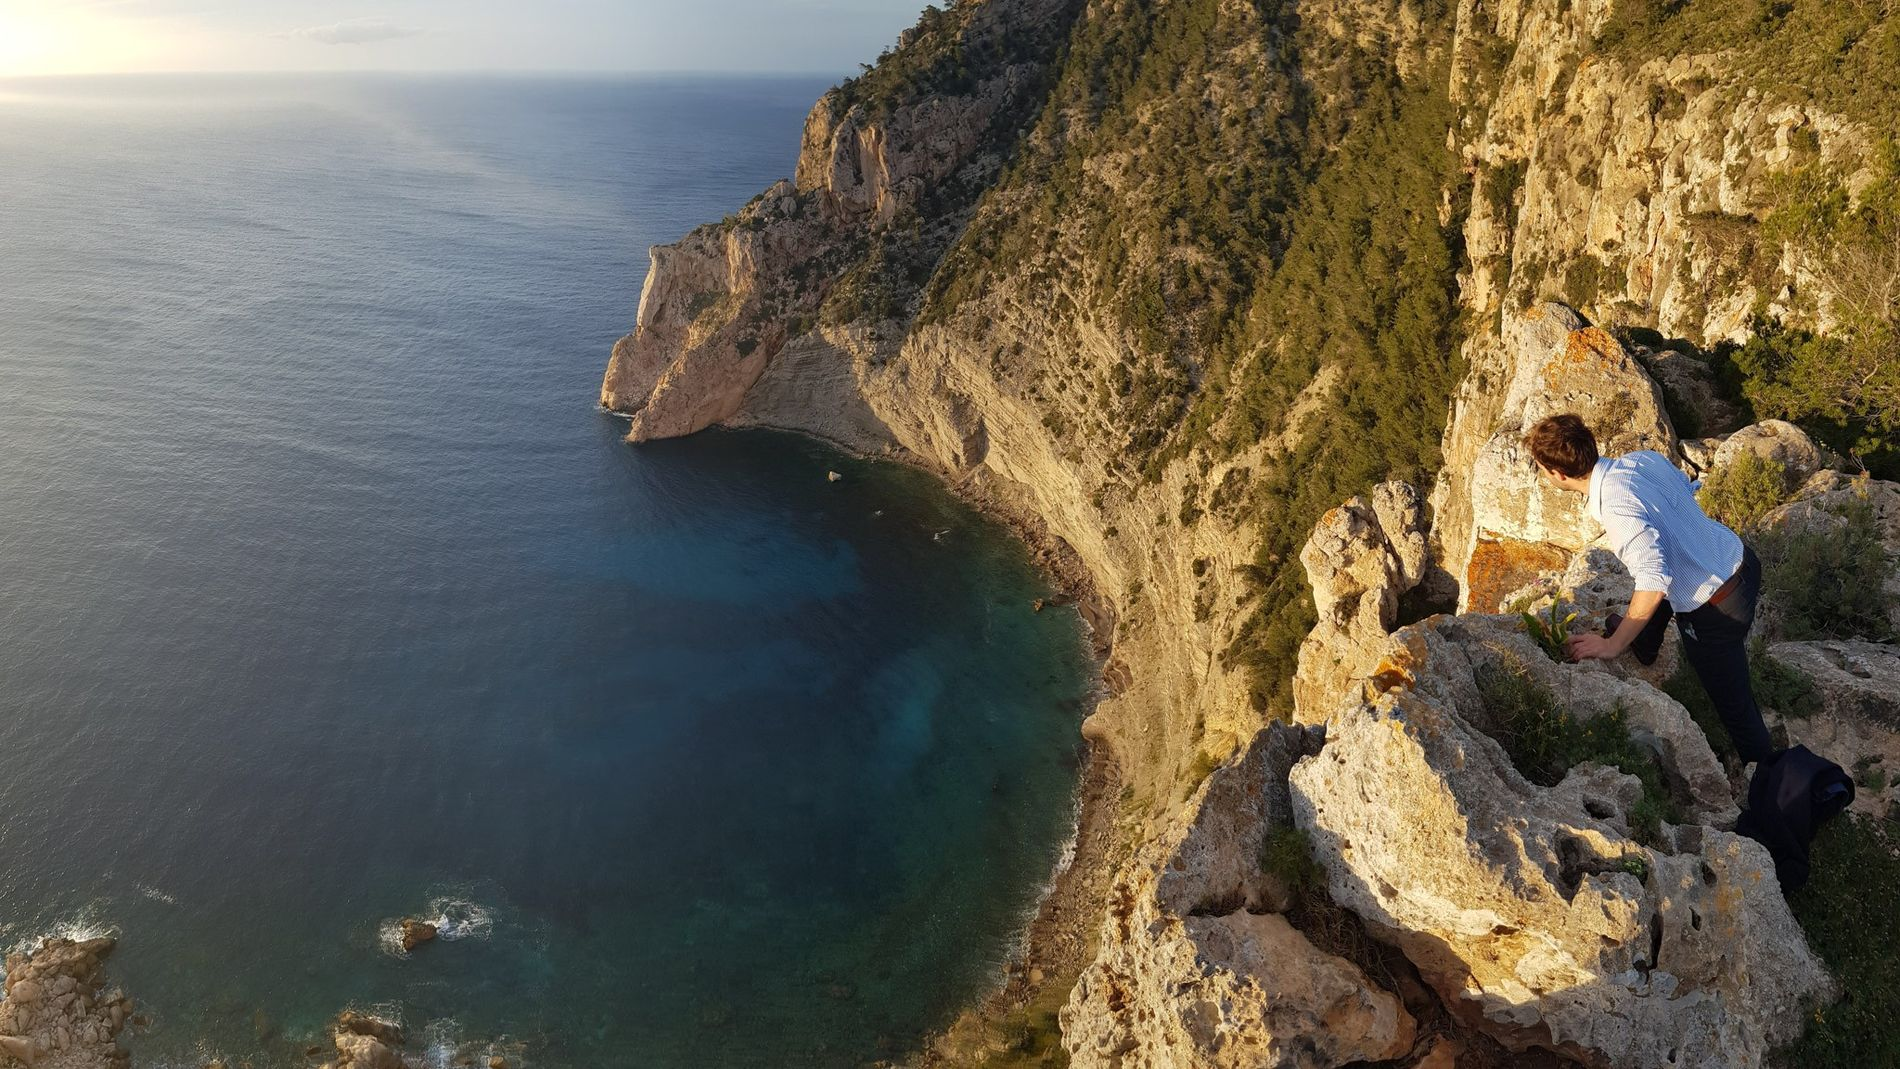 20 pictures that reveal the secret of Spain's allure